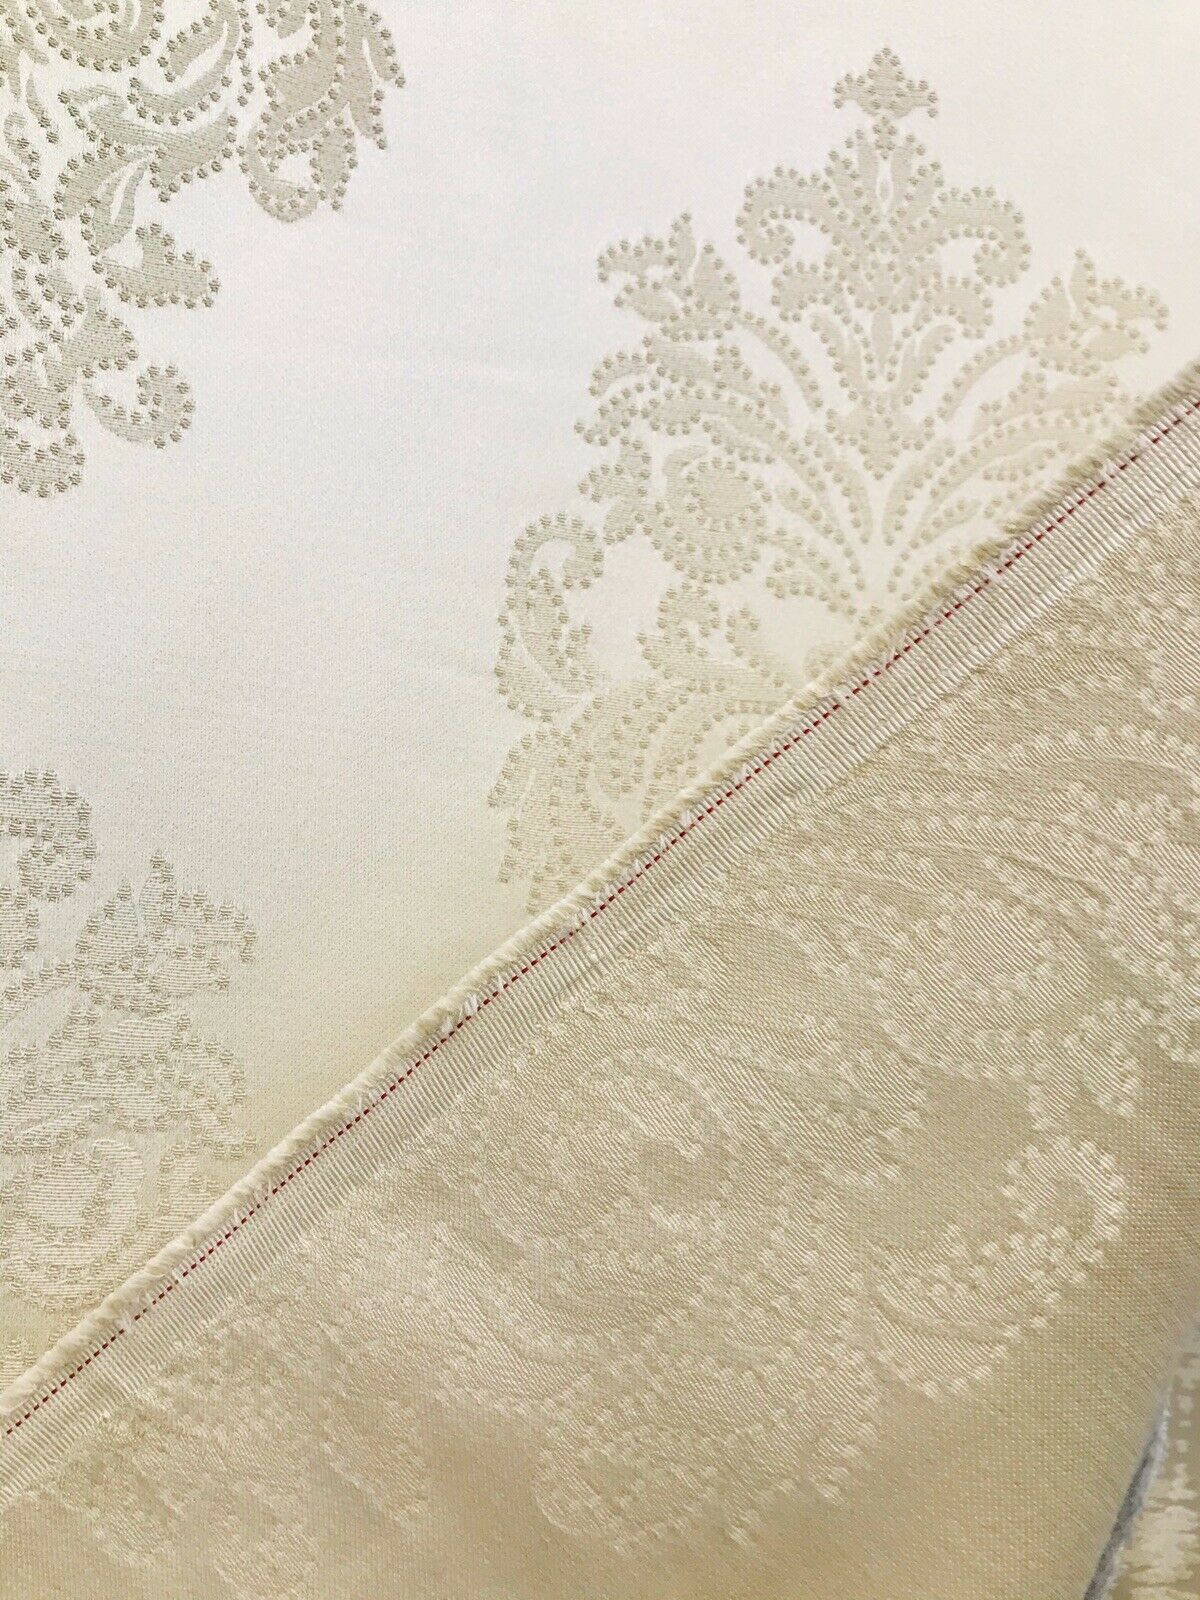 NEW Lady Alison Designer Satin Damask Brocade Upholstery Drapery Fabric - Cream Ivory BTY